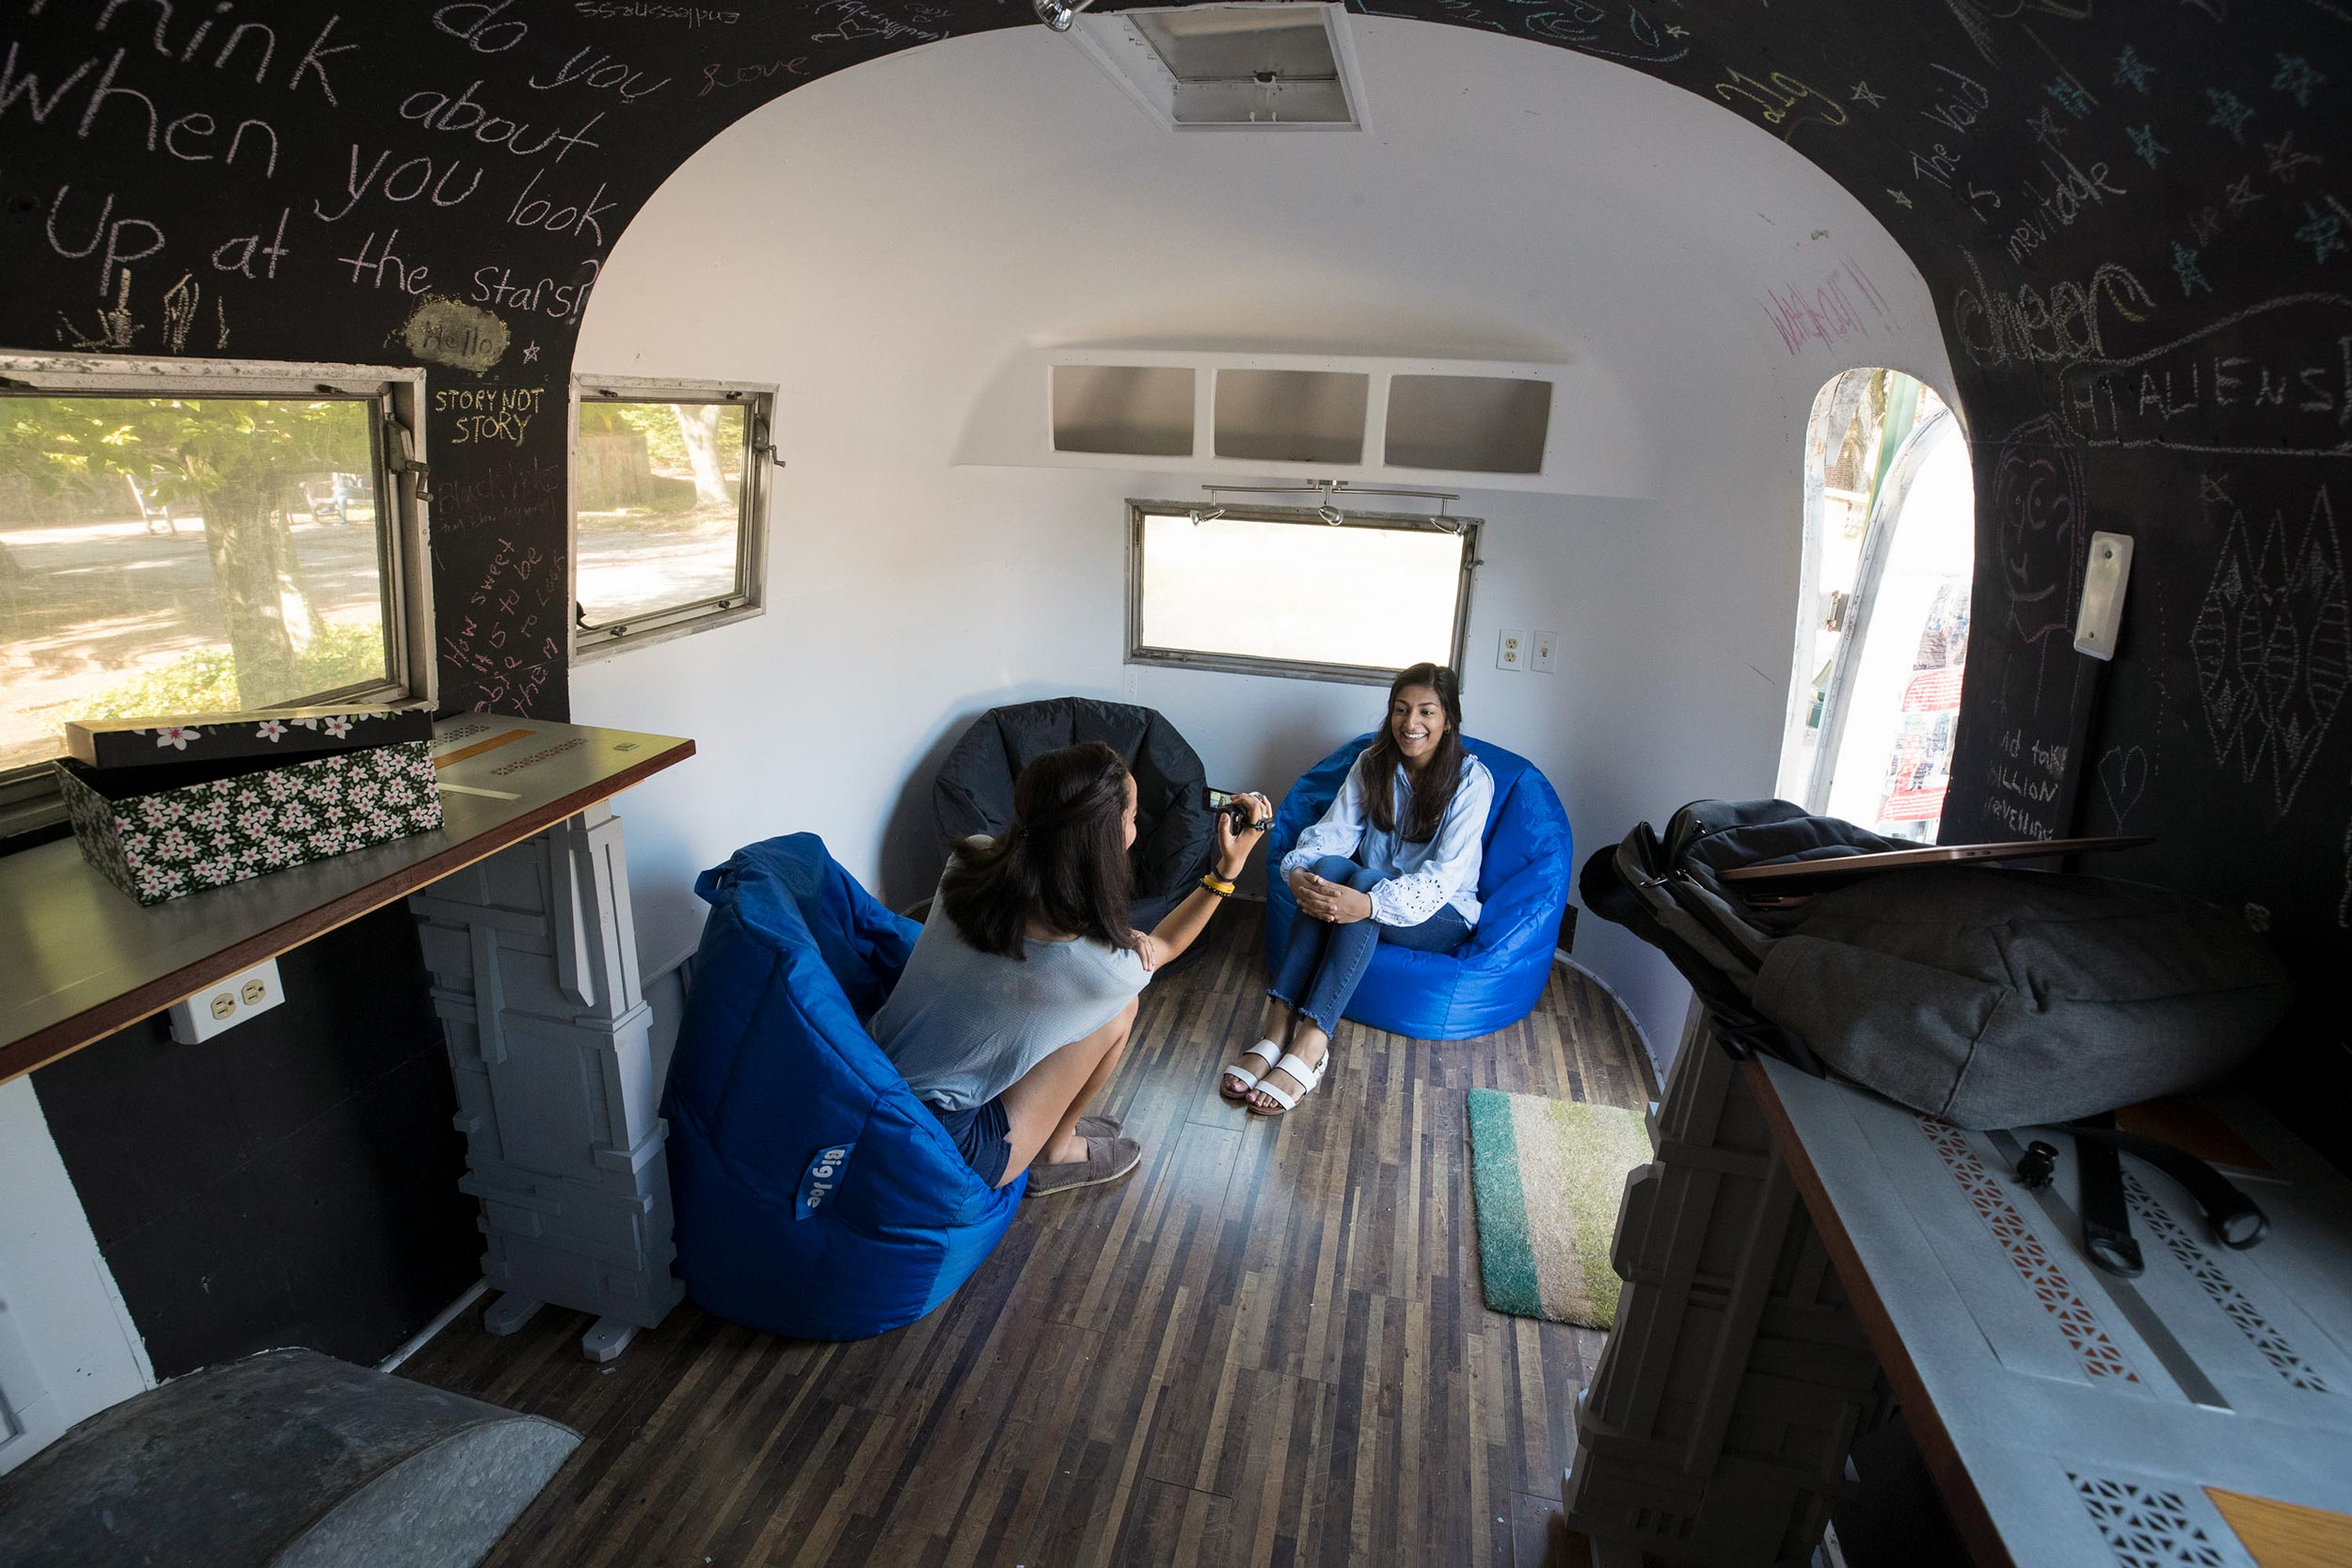 Just like last year, members of the UVA community were invited to submit stories for consideration, either online or at a recording station in this Airstream trailer stationed near Newcomb Hall. (Photo by Dan Addison, University Communications)